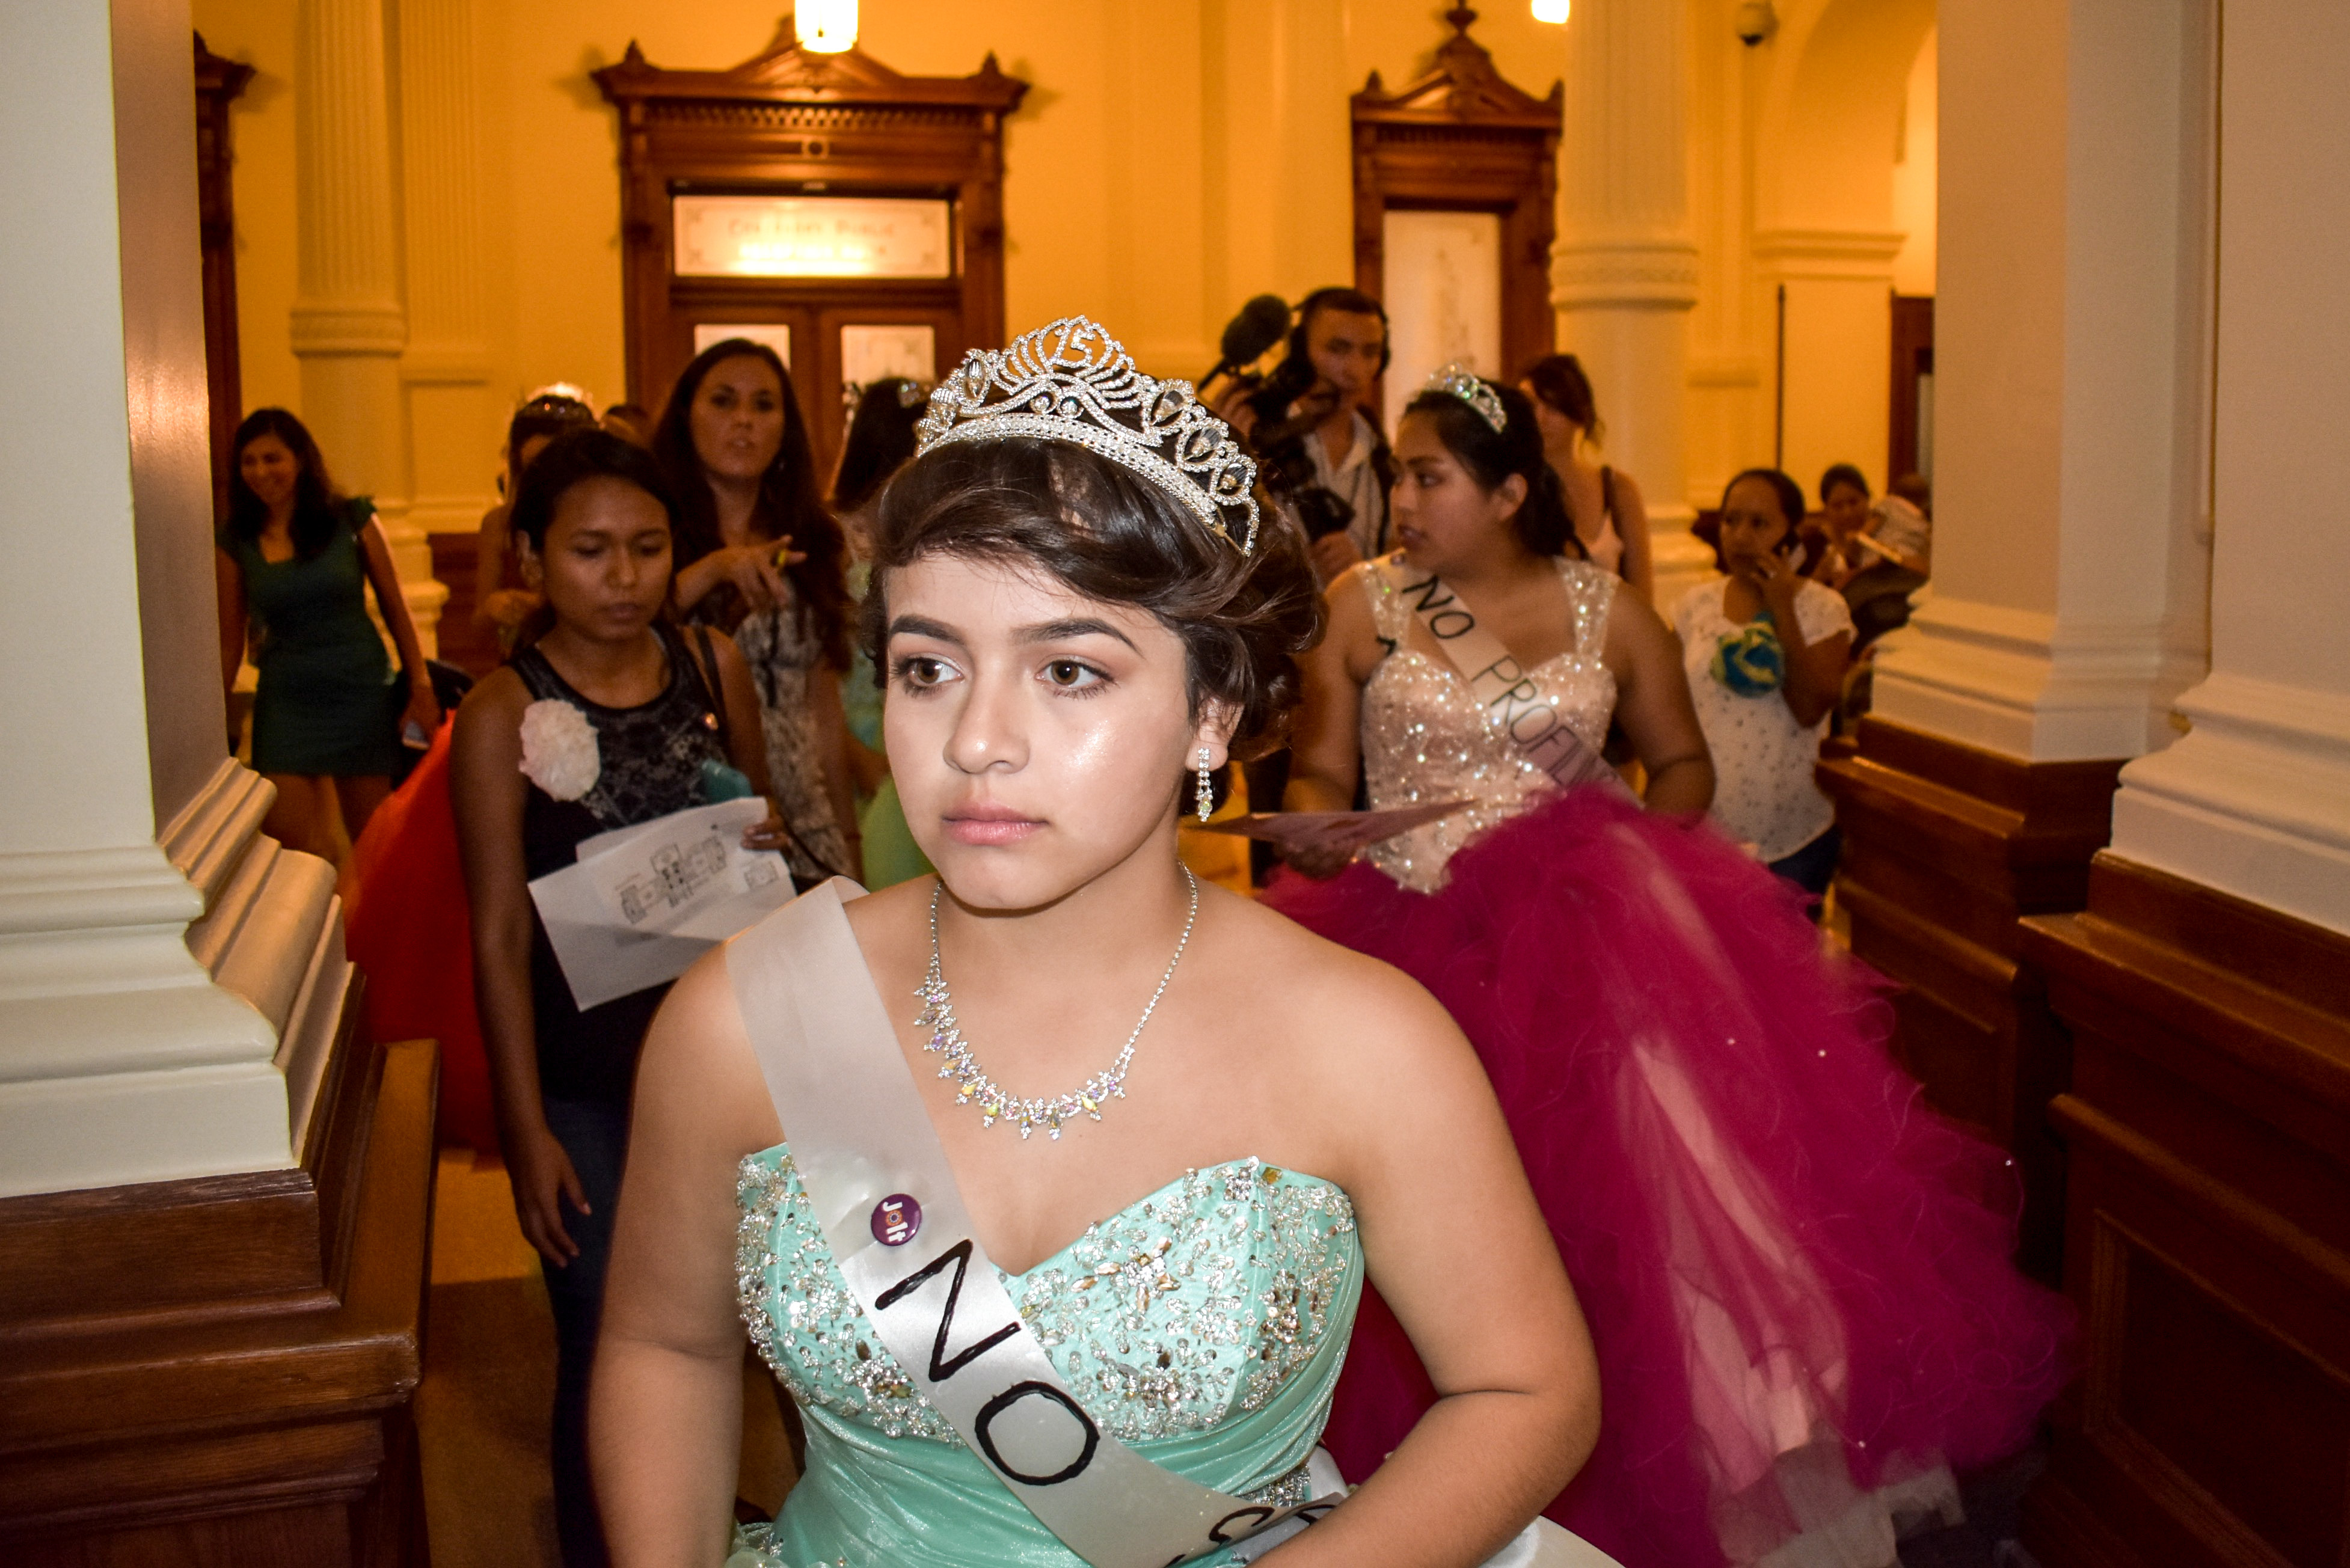 Meet 5 of the Tejana Teens Who Made This Quinceañera-Themed Protest a Success